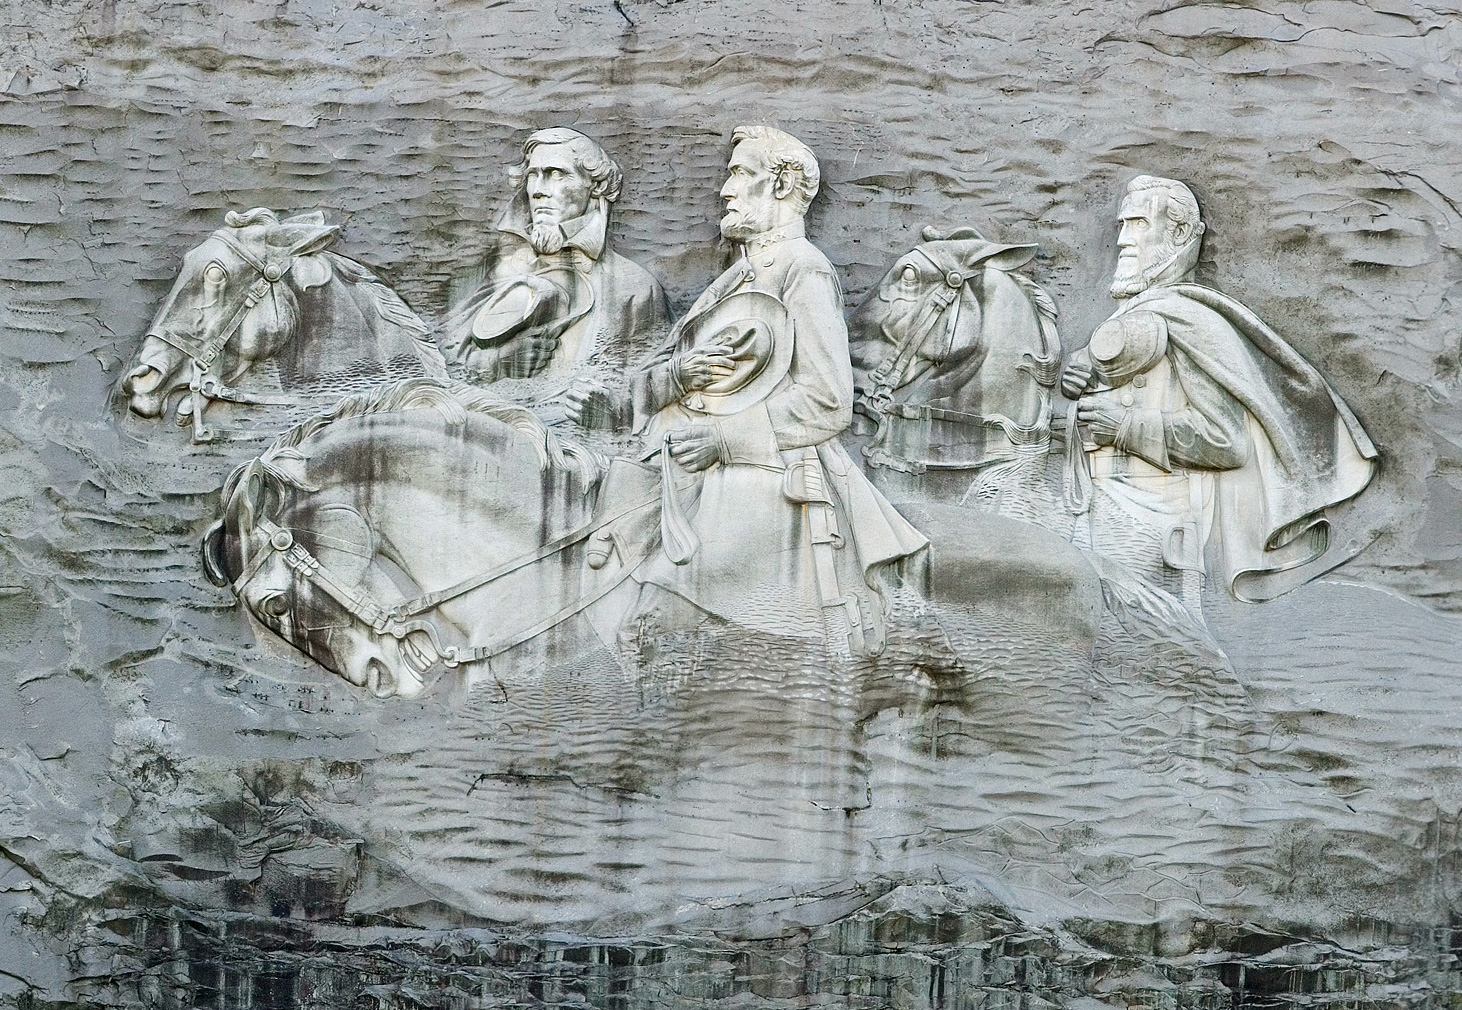 https://upload.wikimedia.org/wikipedia/commons/1/1a/Stone_mountain_closer_up.jpg